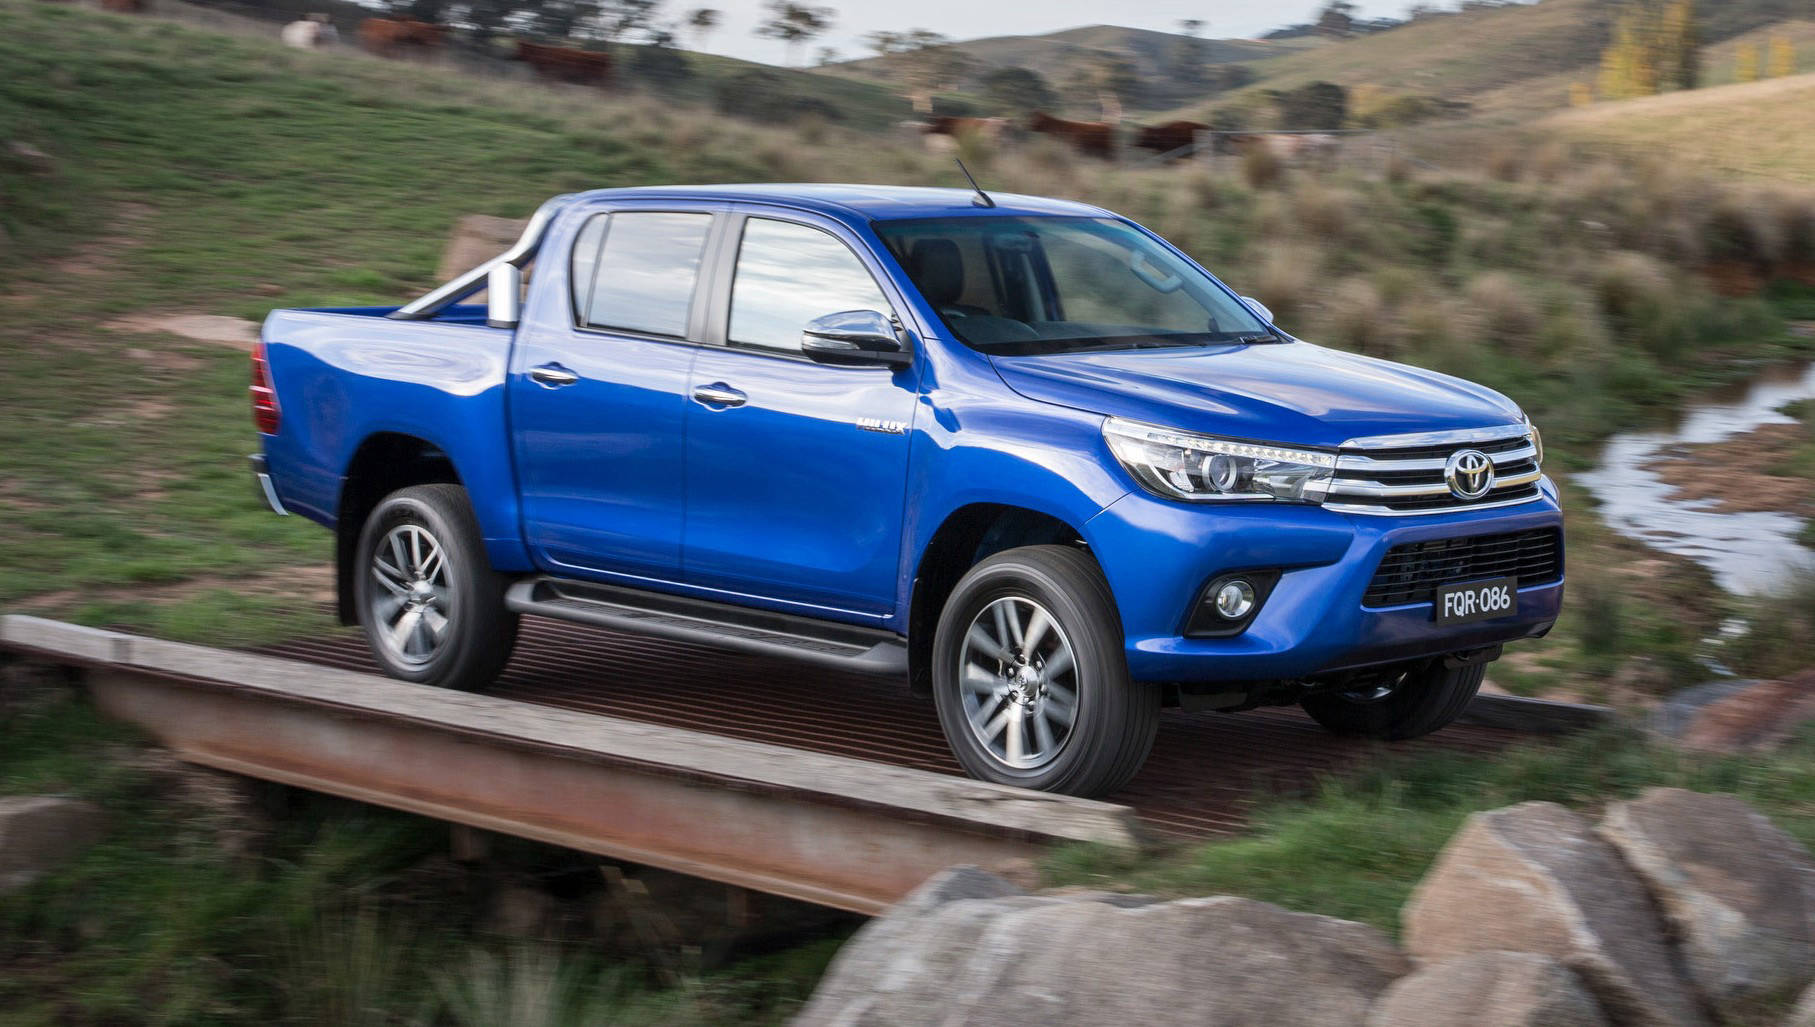 Chasing Cars – 2015 Toyota HiLux Ute